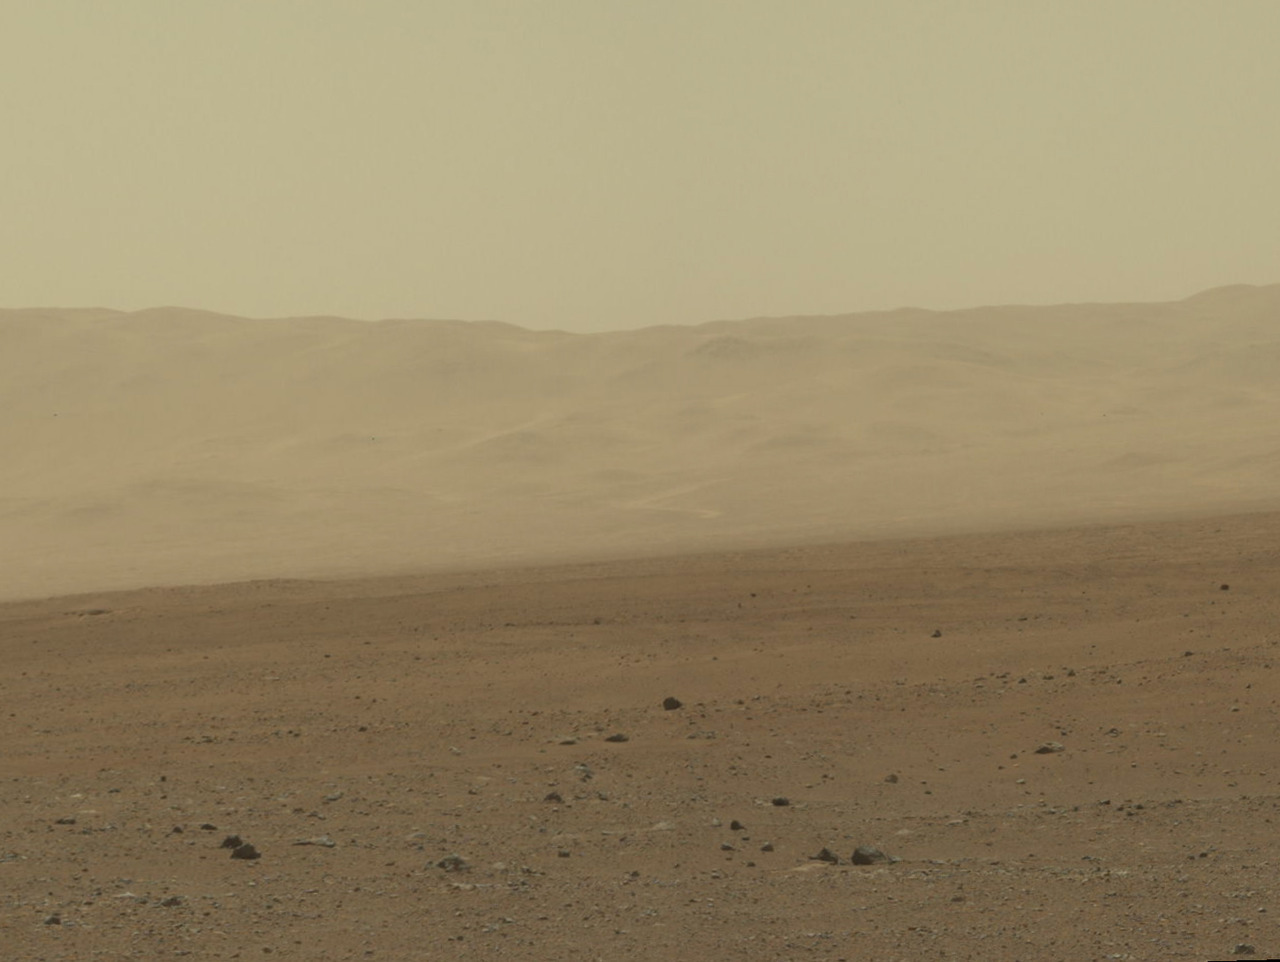 Wall of Gale Crater of Mars, photo taken by NASA Curiosity Rover This color image from NASA's Curiosity rover shows part of the wall of Gale Crater, the location on Mars where the rover landed on Aug. 5, 2012 PDT (Aug. 6, 2012 EDT). This is part of a larger, high-resolution color mosaic made from images obtained by Curiosity's Mast Camera. This image of the crater wall is north of the landing site, or behind the rover. Here, a network of valleys believed to have formed by water erosion enters Gale Crater from the outside. This is the first view scientists have had of a fluvial system - one relating to a river or stream — from the surface of Mars. Known and studied since the 1970s beginning with NASA's Viking missions, such networks date from a period in Martian history when water flowed freely across the surface. The main channel deposit seen here resembles a dirt road ascending into the mountains, which are actually the north wall and rim of Gale Crater.   Although Curiosity is about 11 miles (18 kilometers) away from this area and the view is obscured somewhat by dust and haze, the image provides new insights into the style of sediment transport within this system. Curiosity has no current plans to visit this valley system, since the primary objective of the rover is south of the landing site. But images taken later and with the 100-millimeter Mastcam are likely to allow scientists to study the area in significantly more detail.  The images in this mosaic were acquired by the 34-millimeter MastCam over about an hour of time on Aug. 8, 2012 PDT (Aug. 9, 2012 EDT), each at 1,200 by 1,200 pixels in size.  Image credit: NASA/JPL-Caltech/MSSS